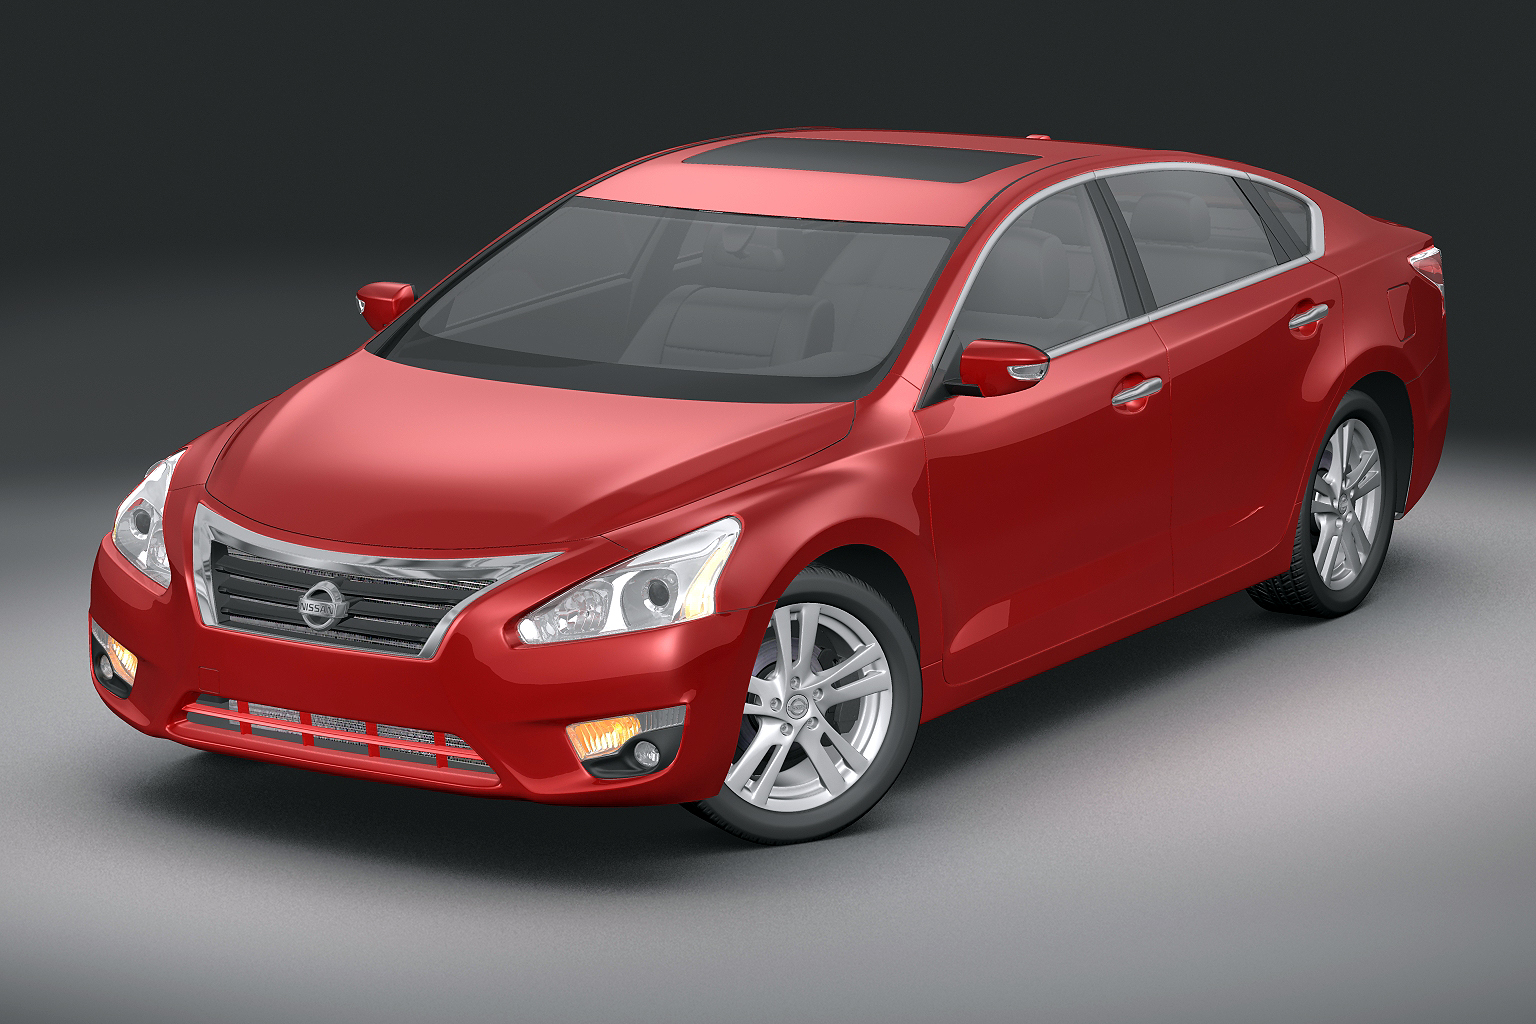 2013 nissan altima Model 3d 3ds max fbx lwo obj 141834